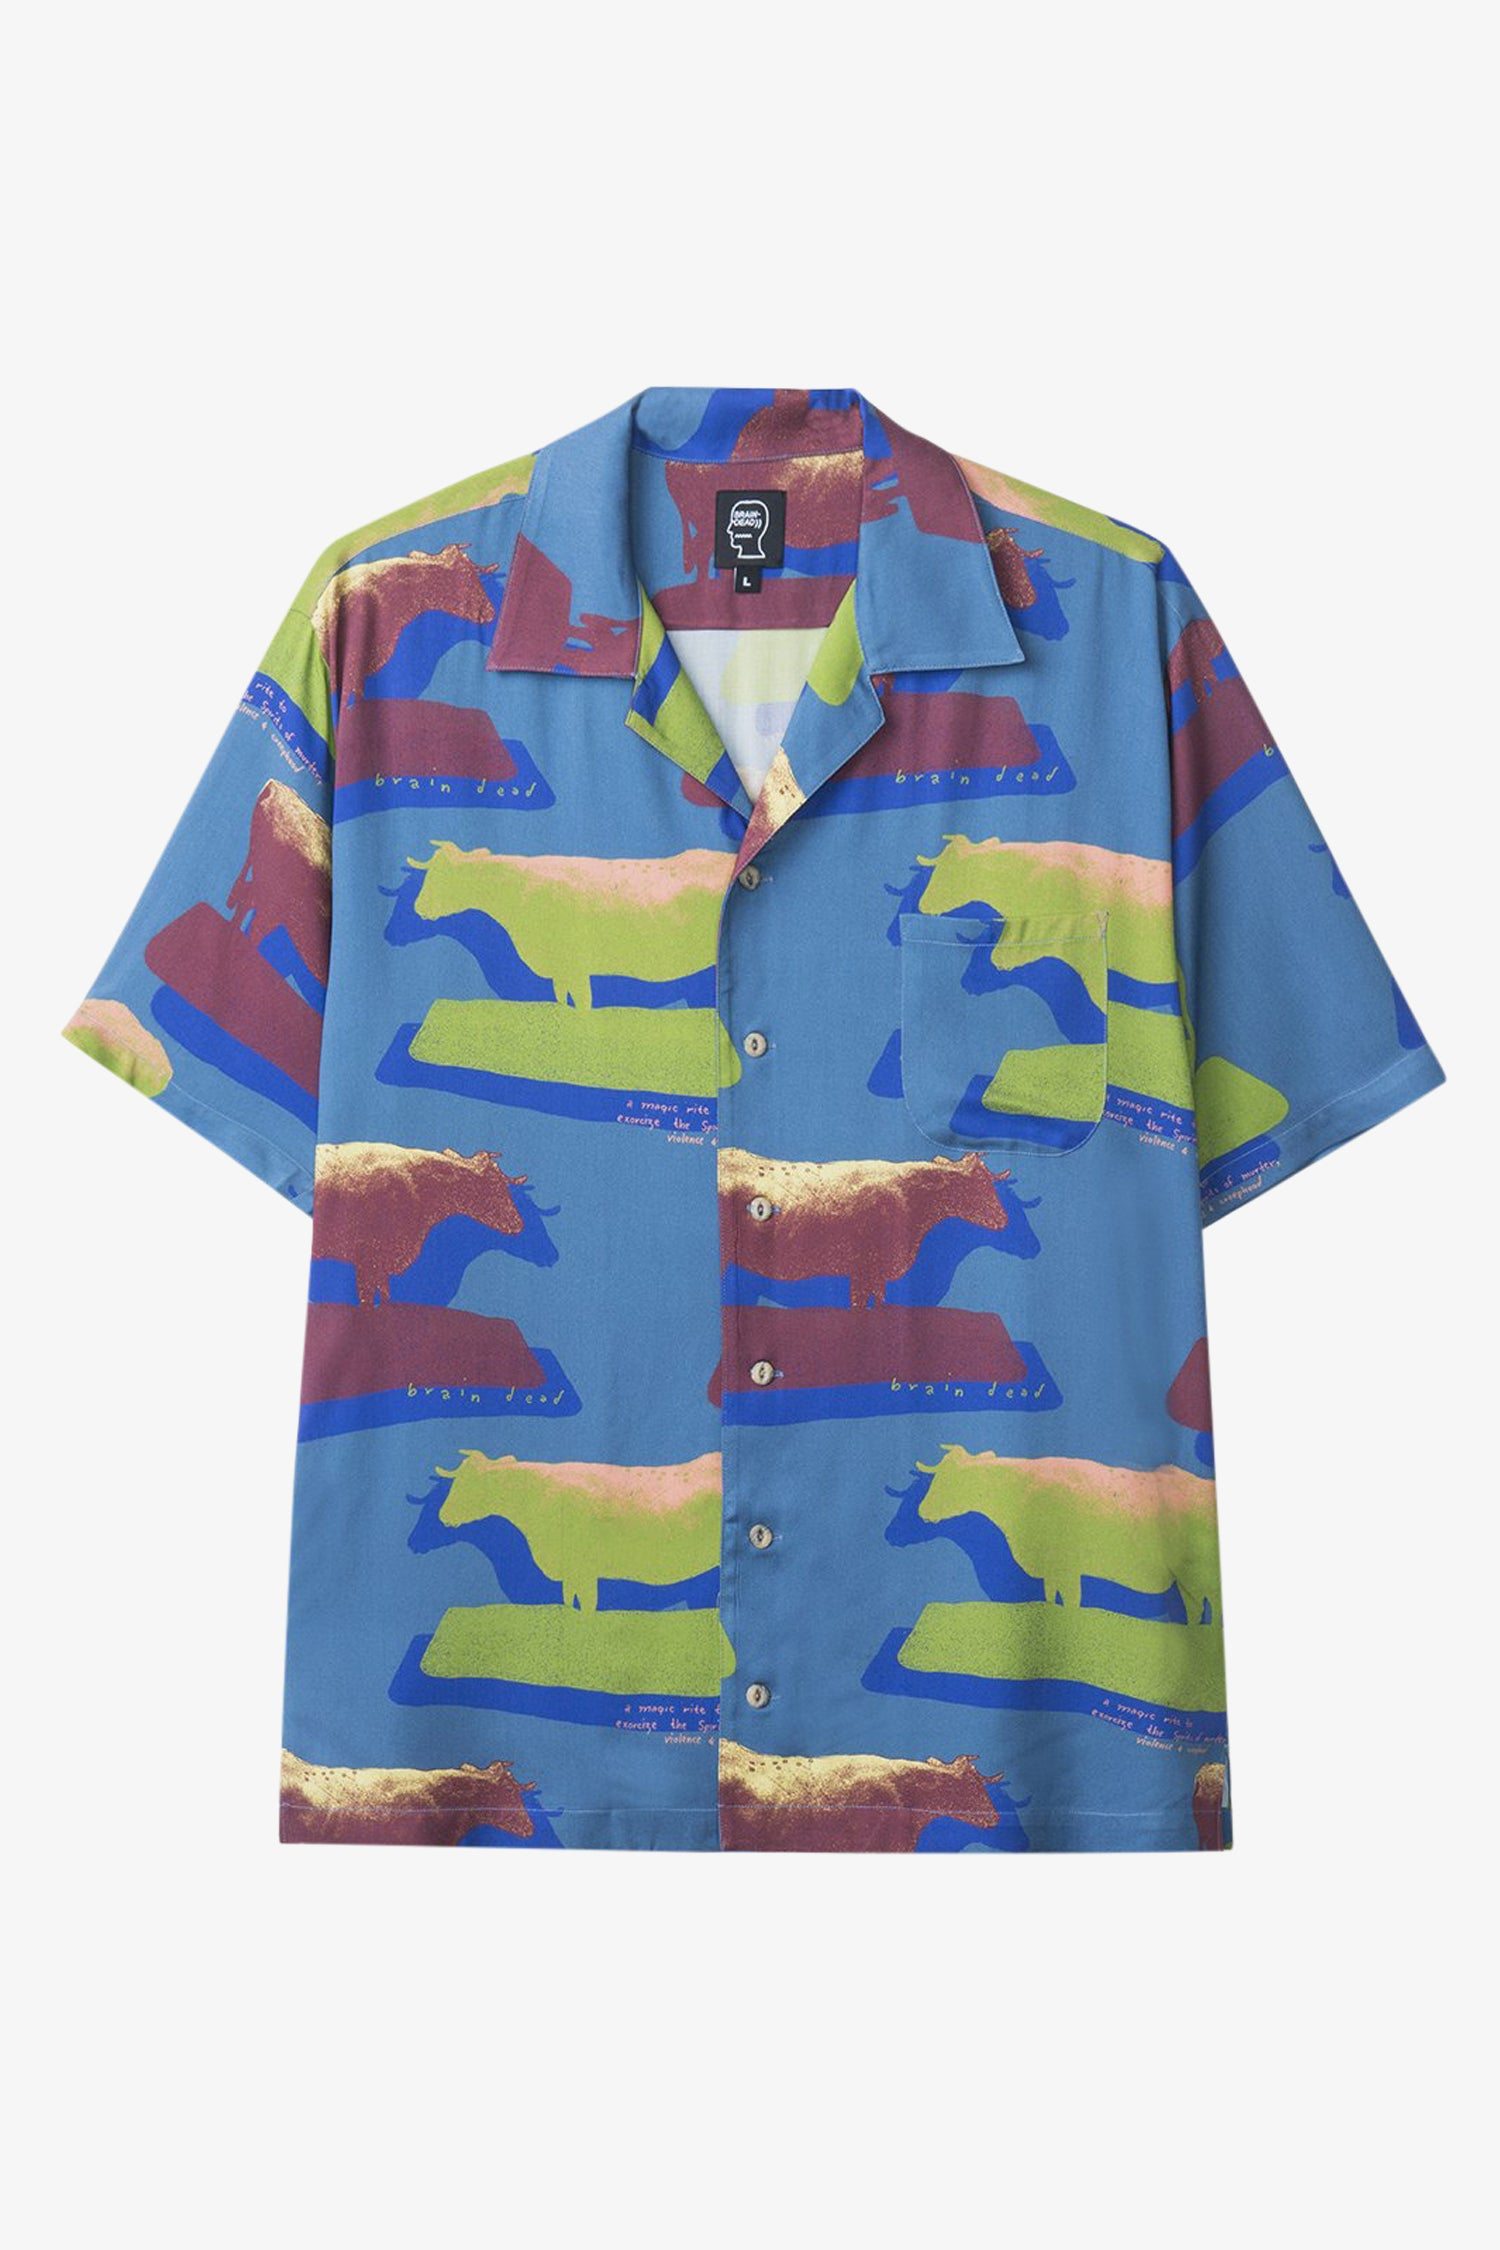 Selectshop FRAME - BRAIN DEAD Cow Short Sleeve Hawaiian Shirt Shirt Dubai